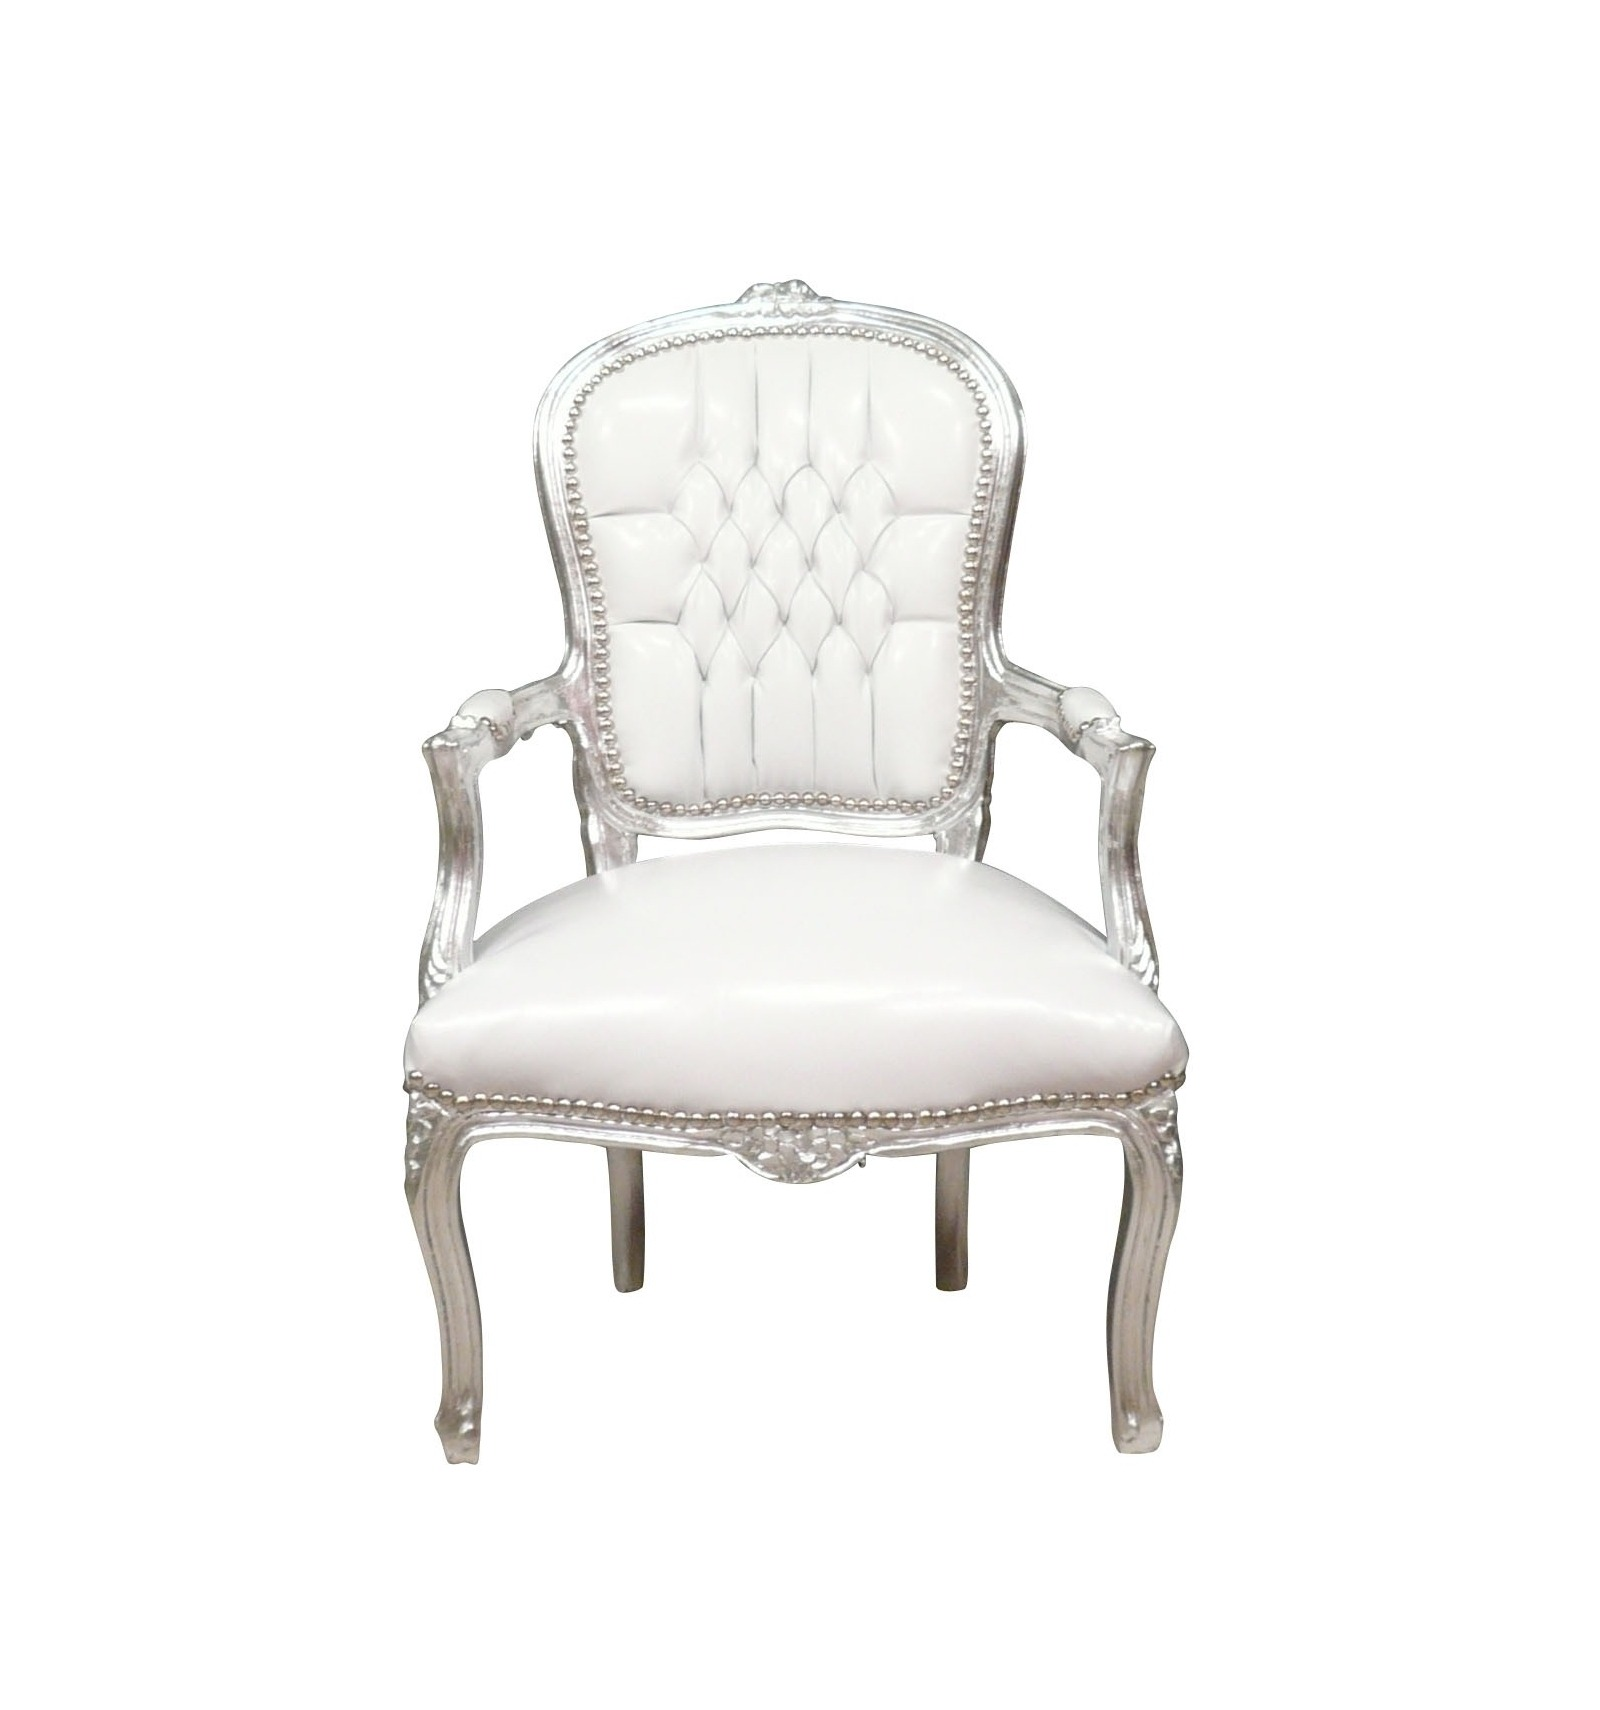 baroque armchair louis xv white and silver chair. Black Bedroom Furniture Sets. Home Design Ideas